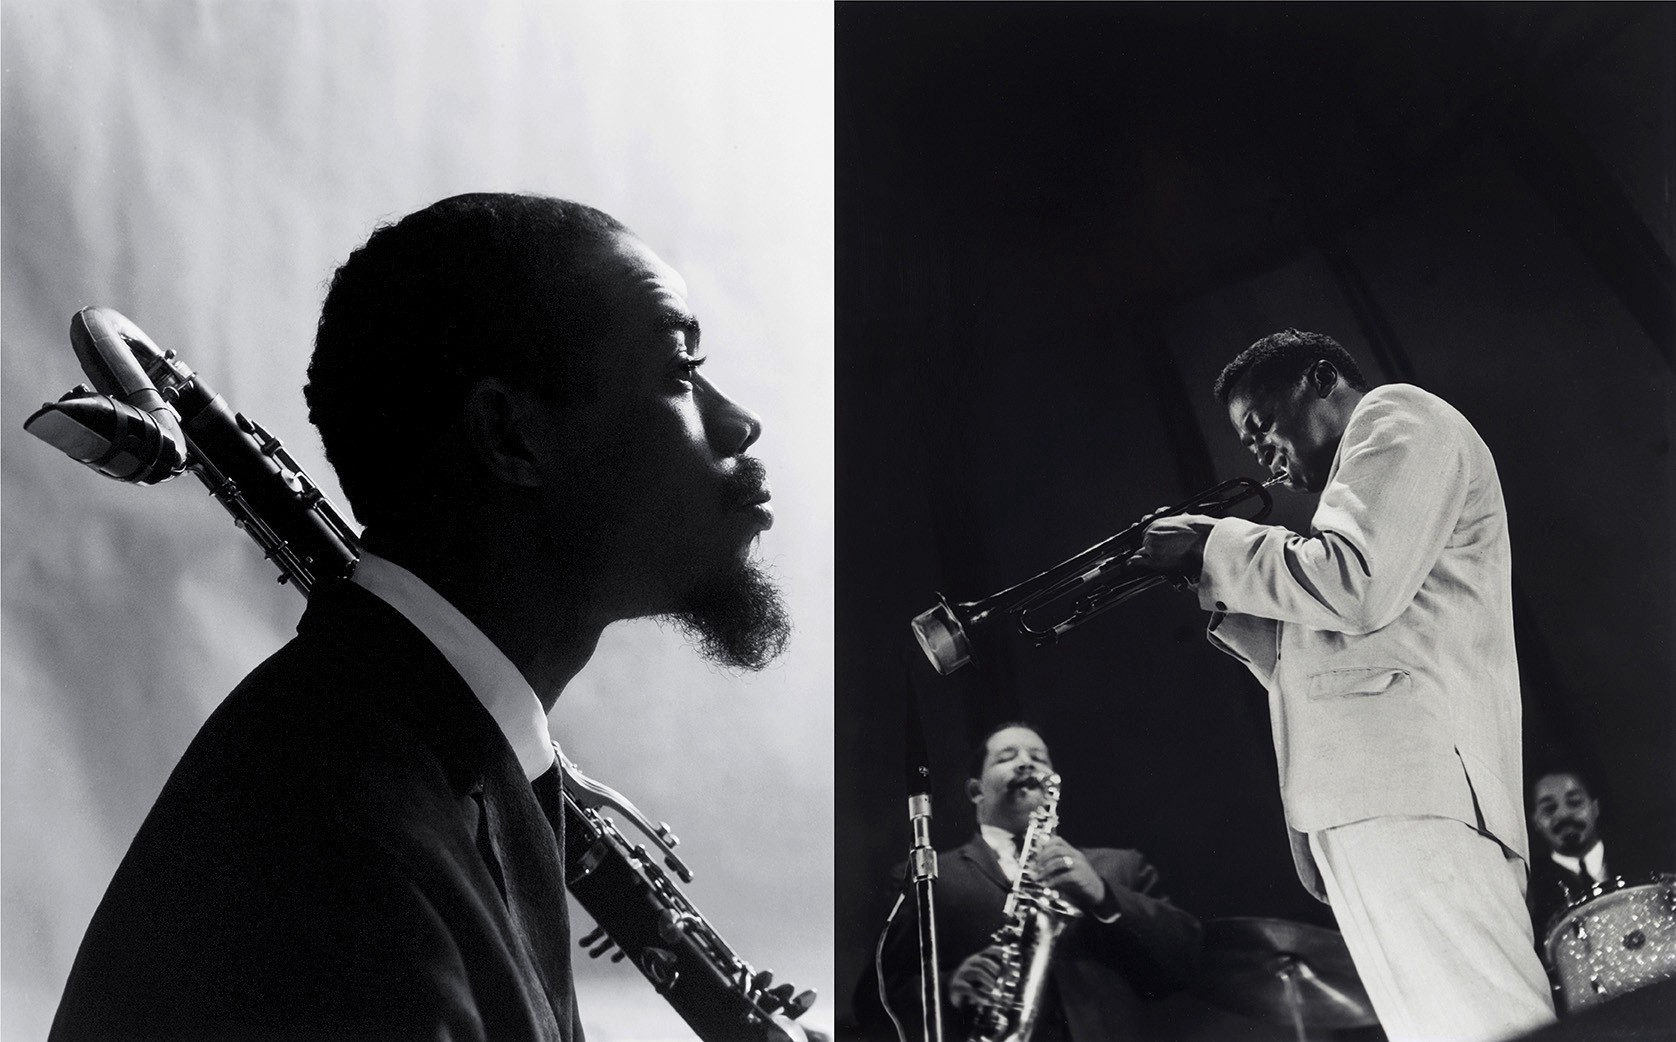 The rebirth of cool jazz legends featured in new silicon valley photo exhibit